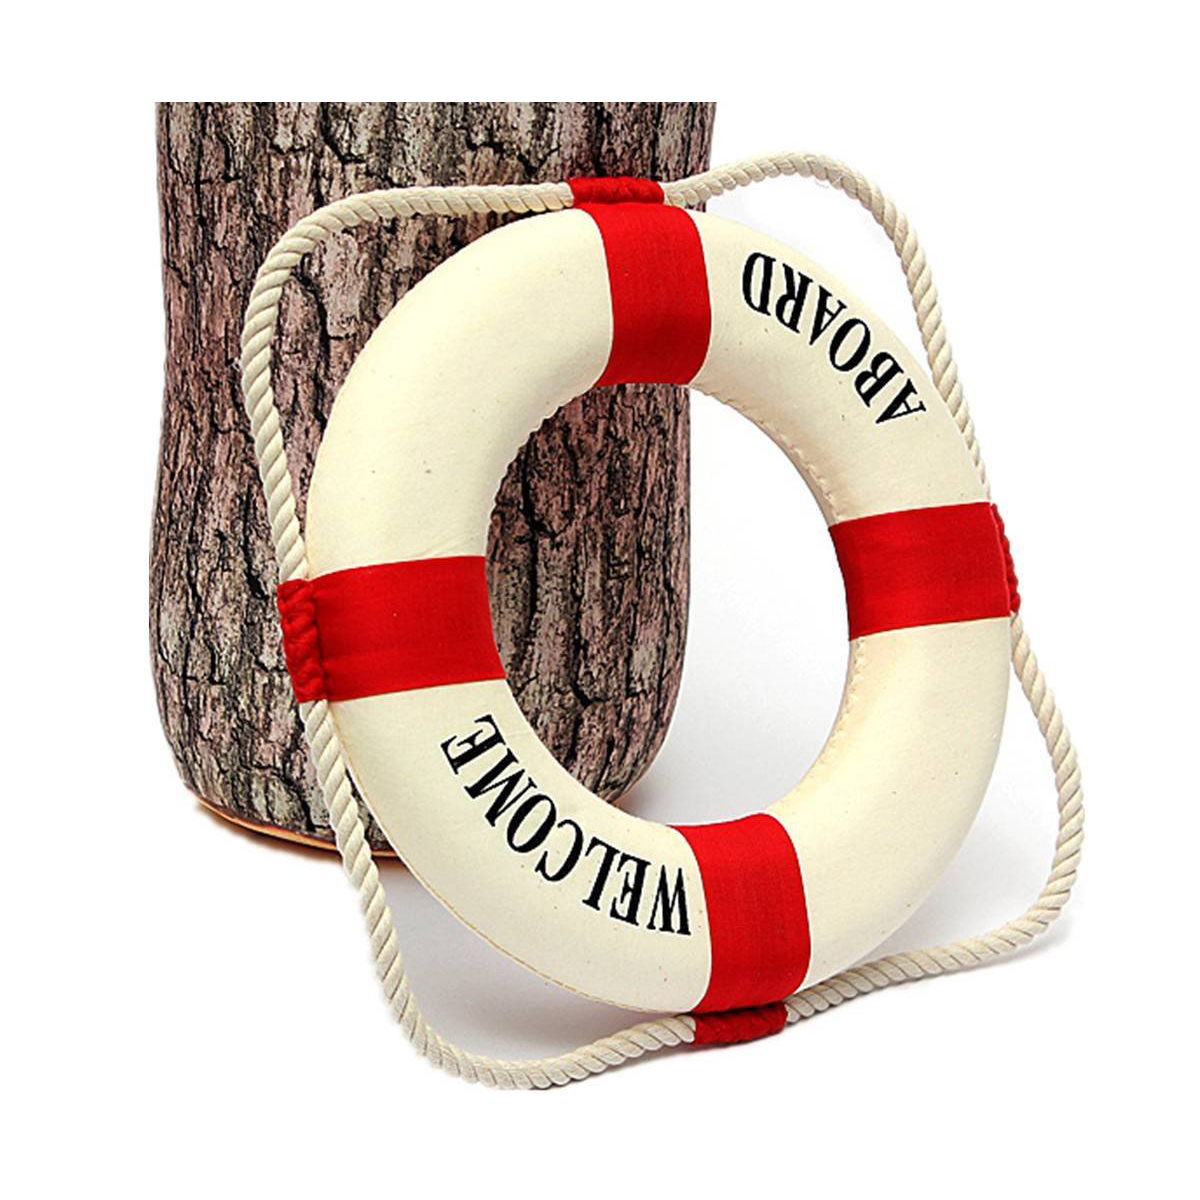 Welcome aboard boat ships life ring clock - Nautical Home Decor New Decorative Welcome Aboard Nautical Lifebuoy Ring